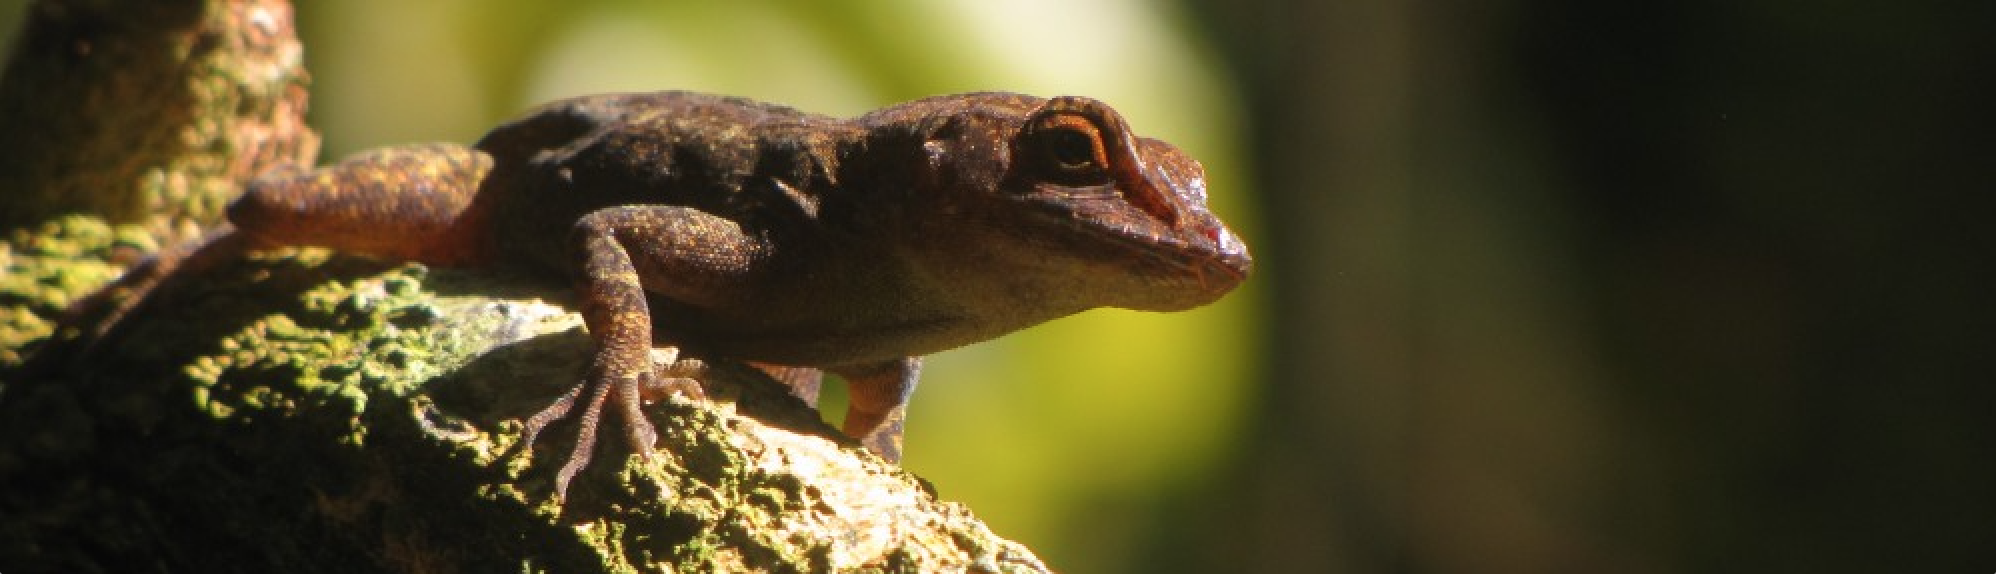 """Our Assumptions Influence the """"Facts"""" About Sexual Behavior: The Curious Case of Jerry Coyne, Holly Dunsworth, and Anolis Lizards"""